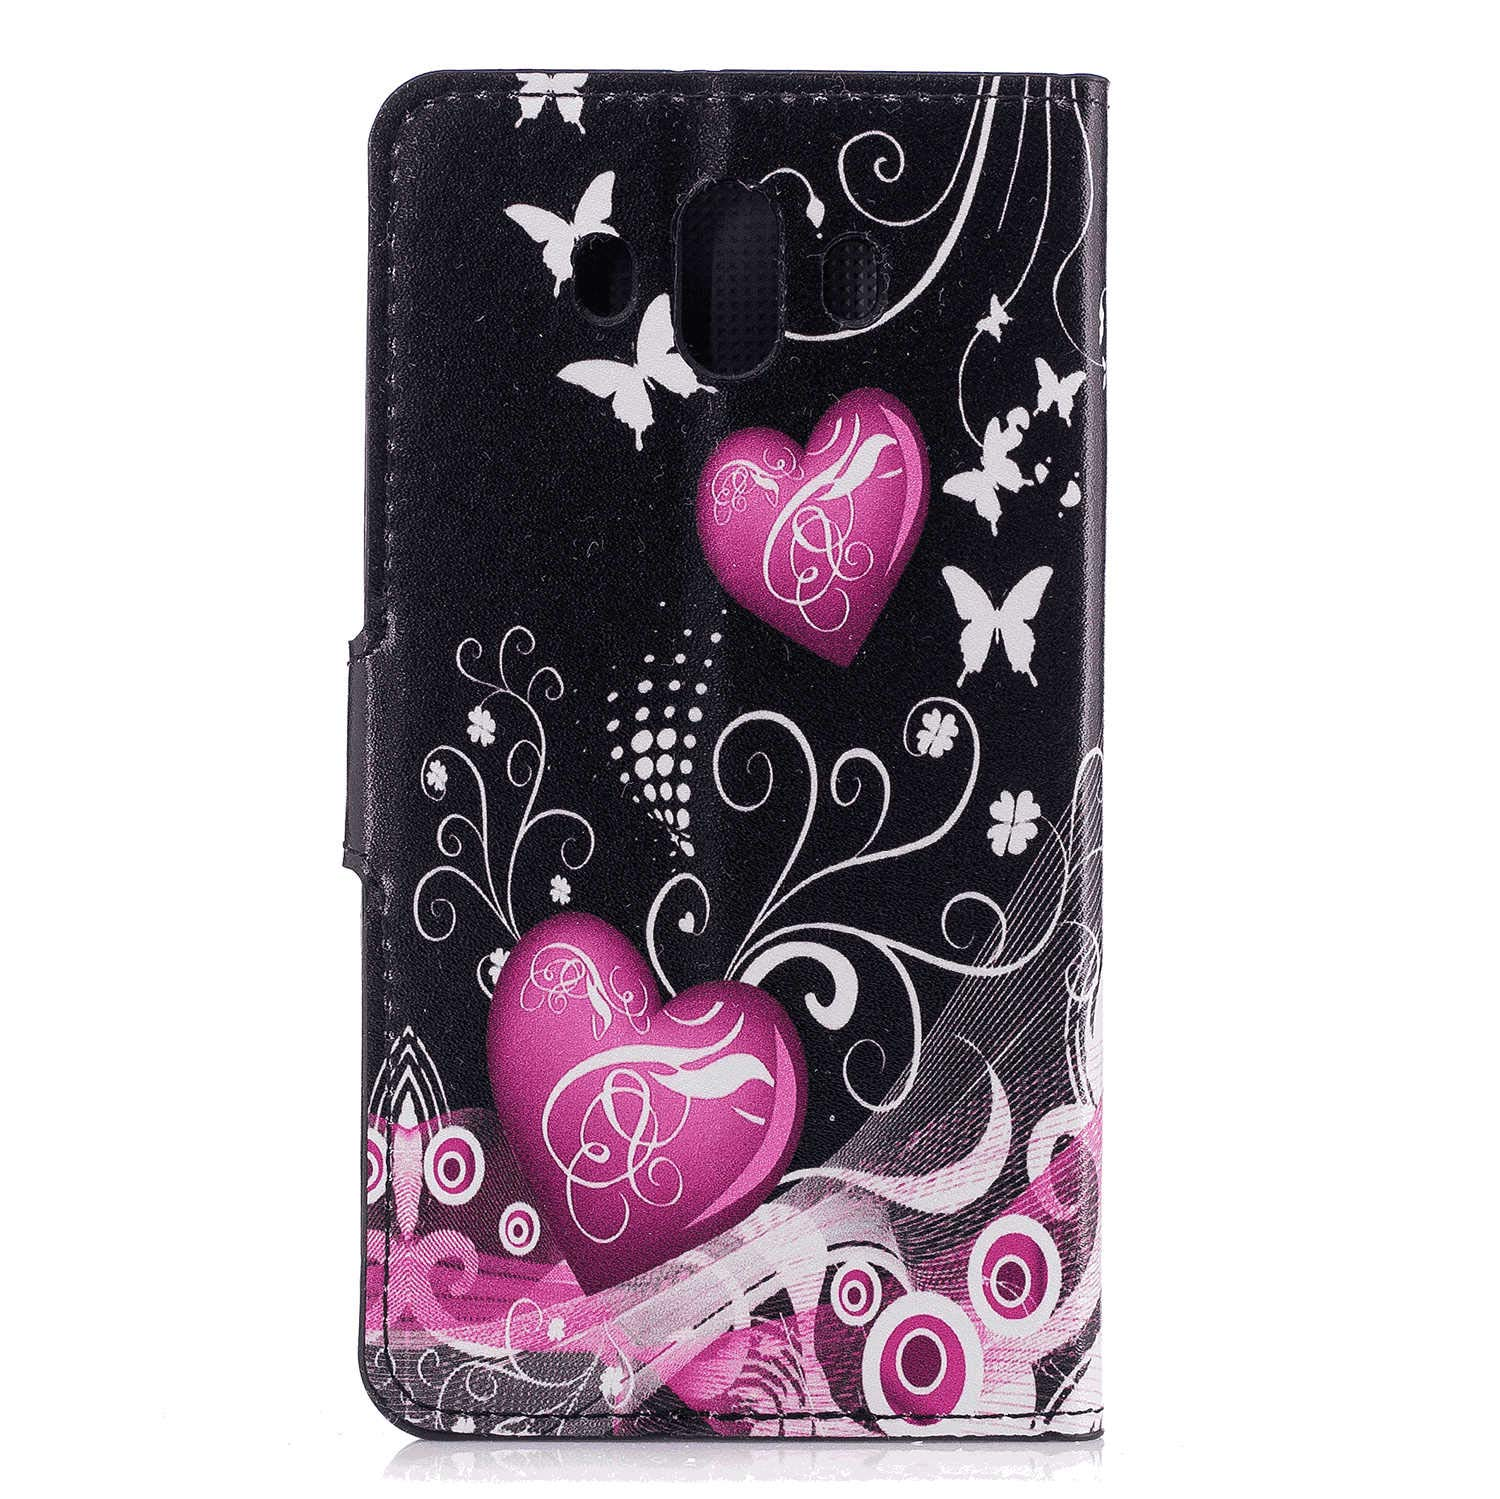 Samsung Galaxy Note8 Flip Case Cover for Samsung Galaxy Note8 Leather Kickstand Cell Phone Cover Luxury Business Card Holders with Free Waterproof-Bag Business